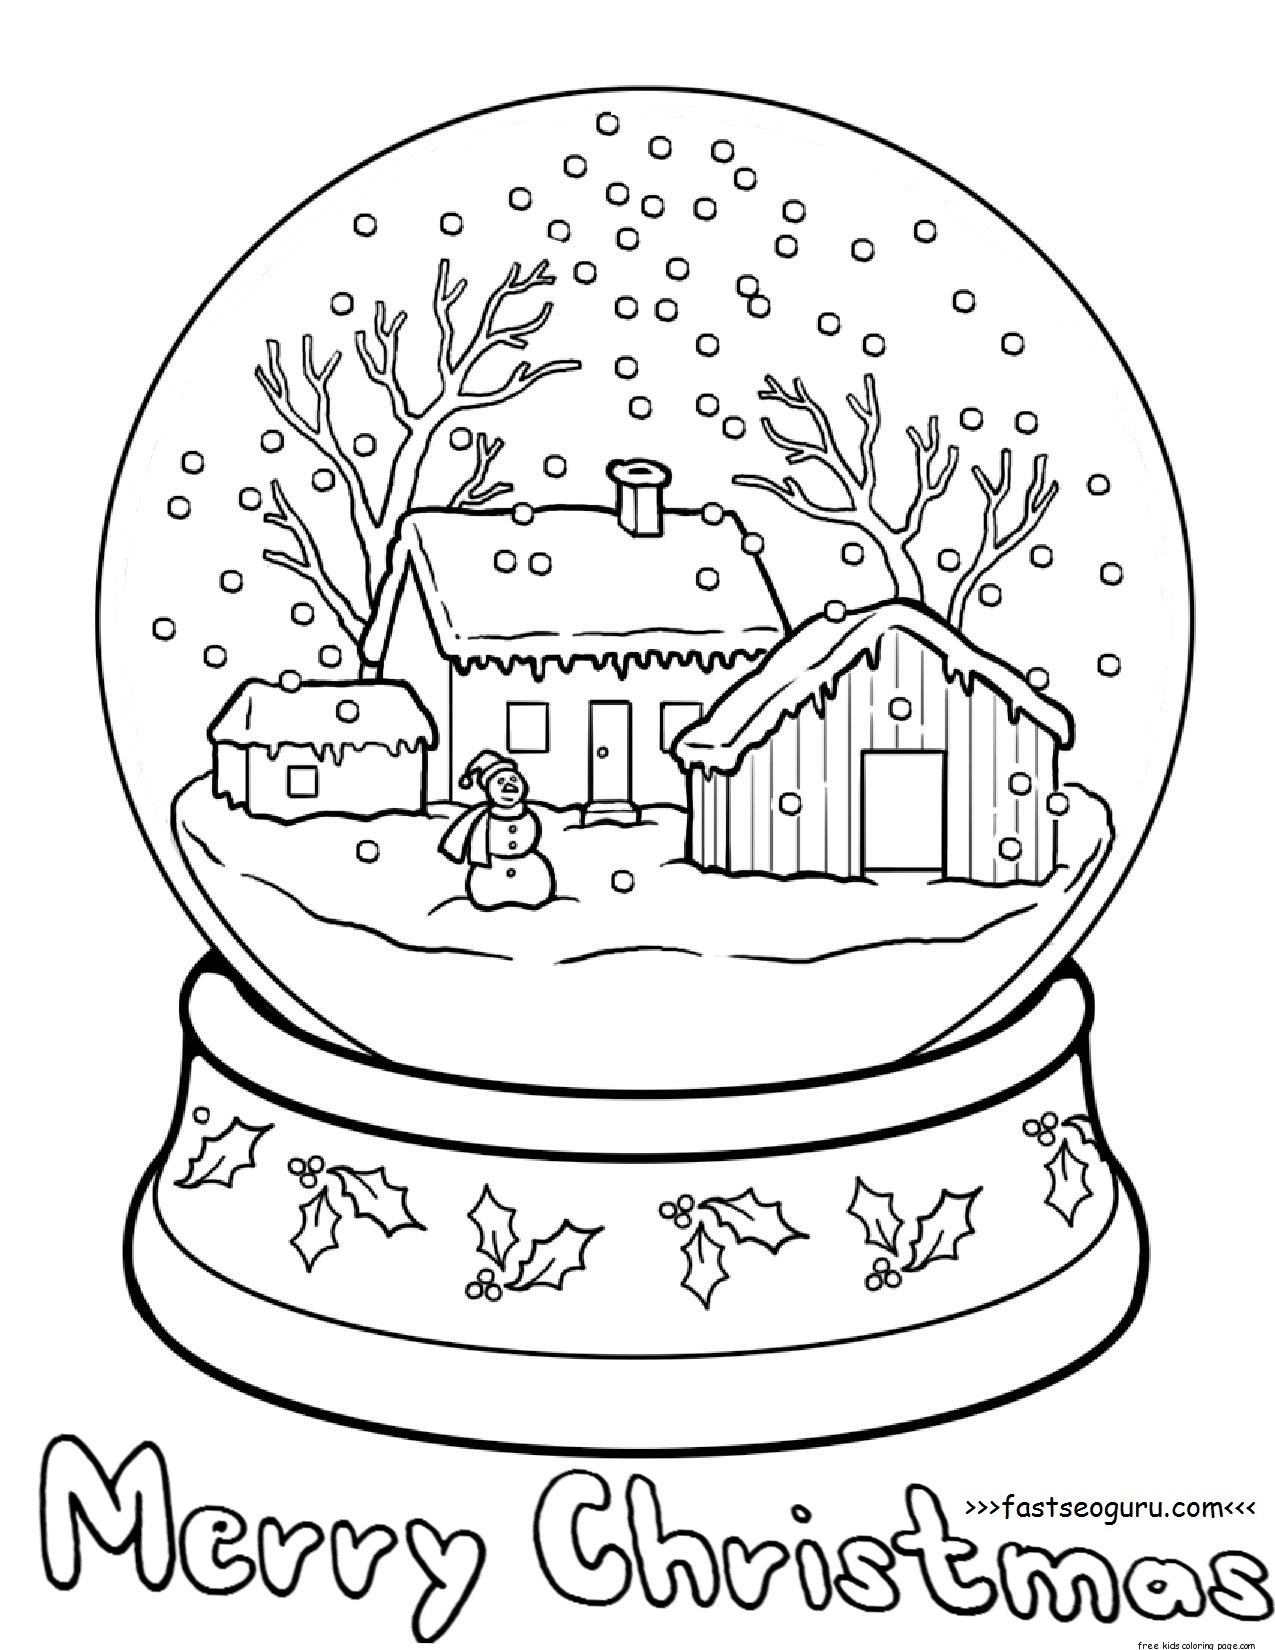 also  together with  also latest cb 20130419172121 likewise  additionally Printable Color by numbers Christmas Tree coloring pages for kids additionally disney princess coloring pages 66 additionally  additionally 014 together with  as well . on cat in tree with christmas coloring pages